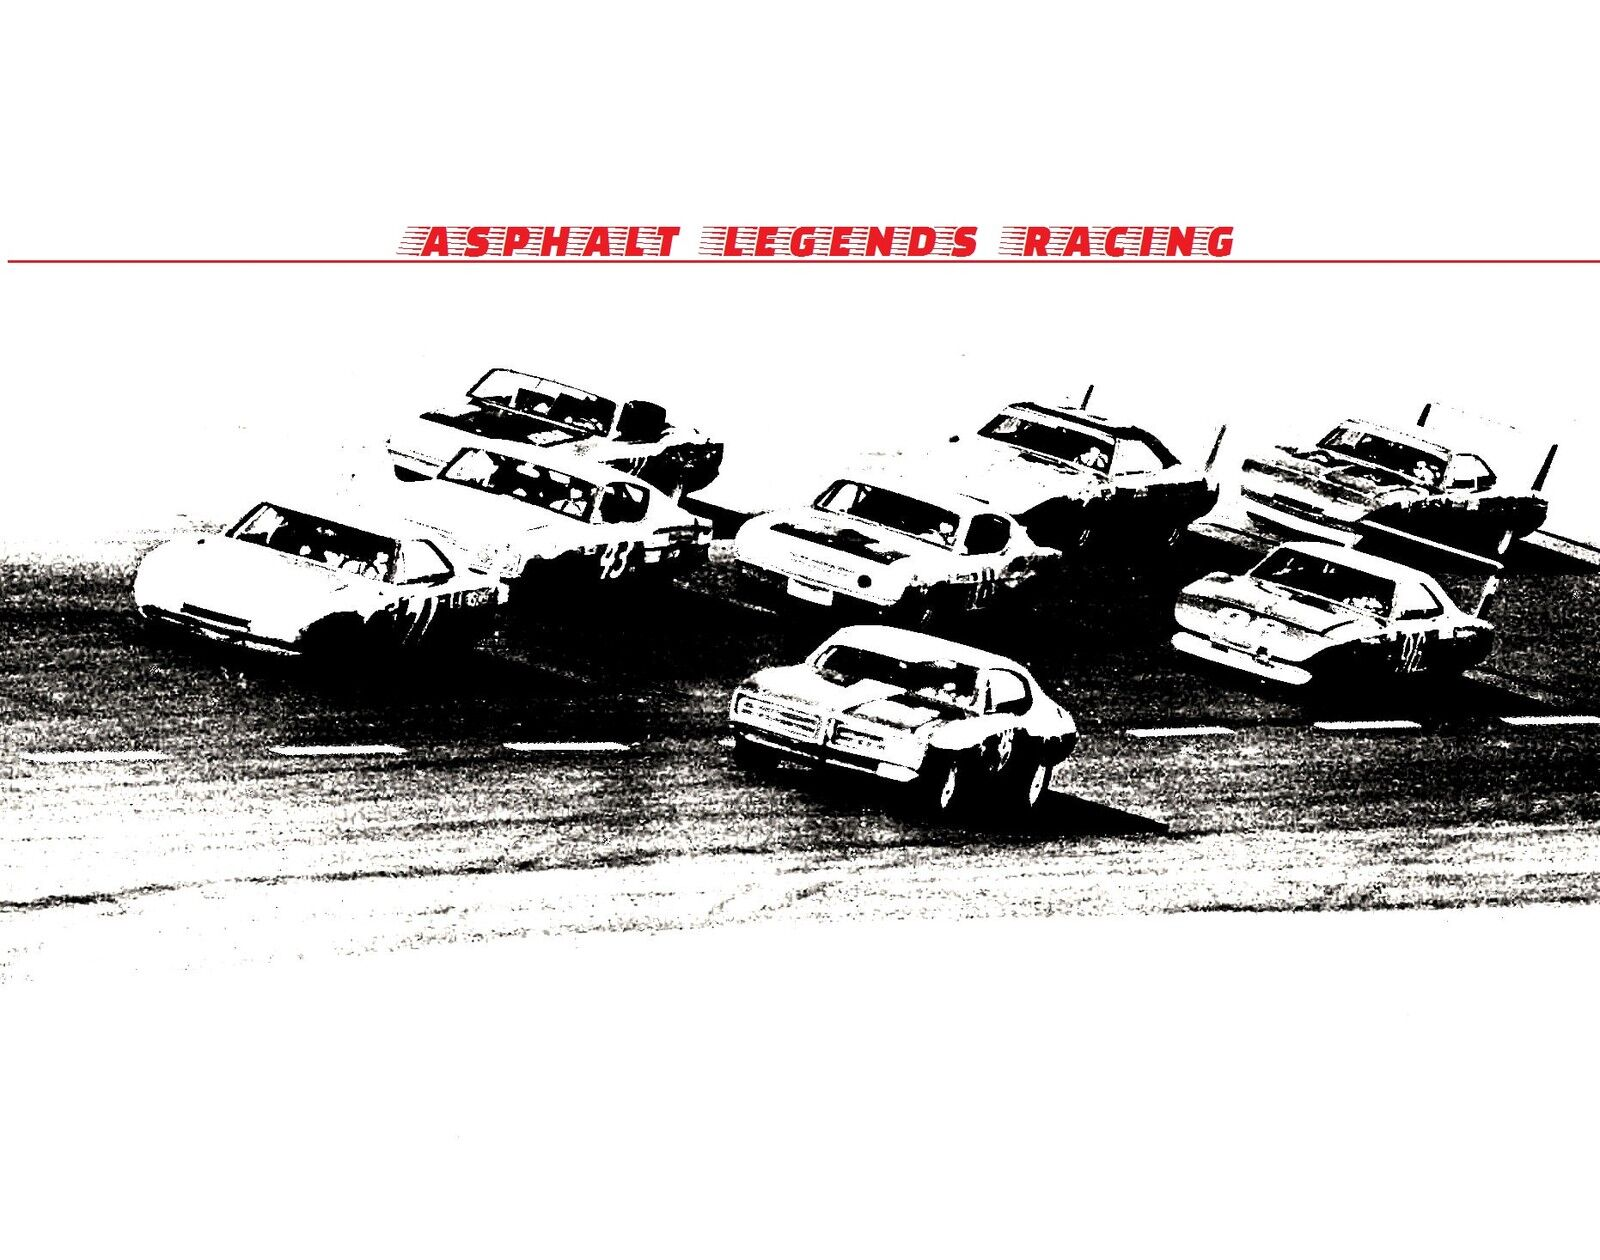 asphalt legends racing